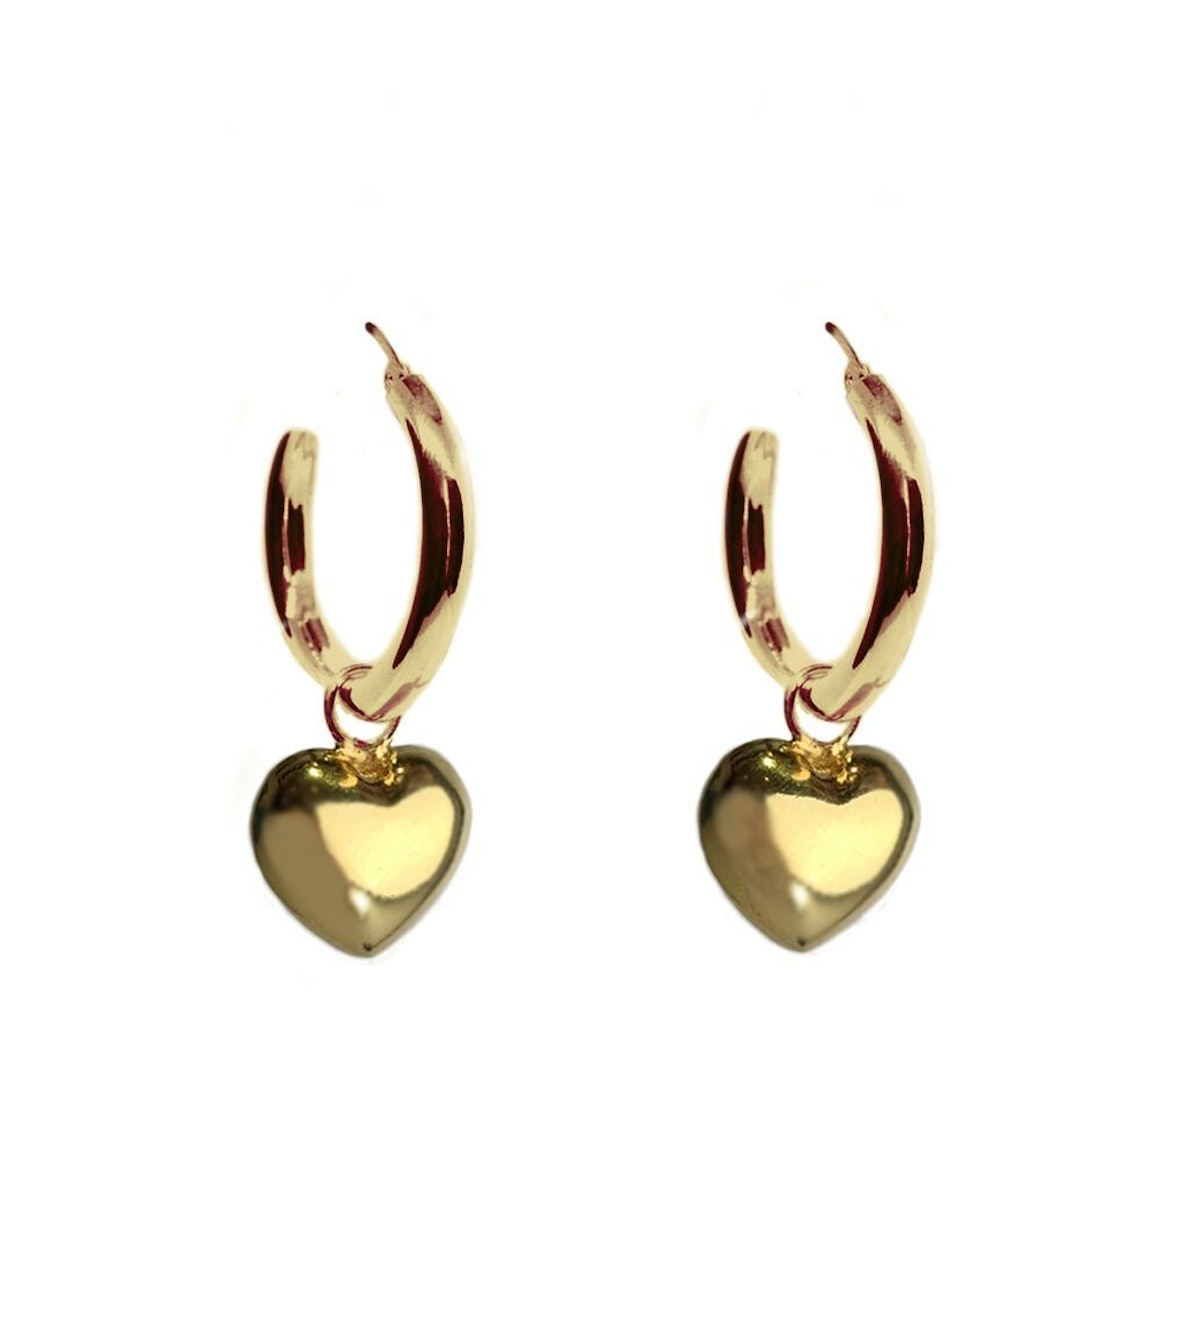 Full Heart Charm Earrings in gold vermeil from Mexican jewelry brand TUZA Jewelry